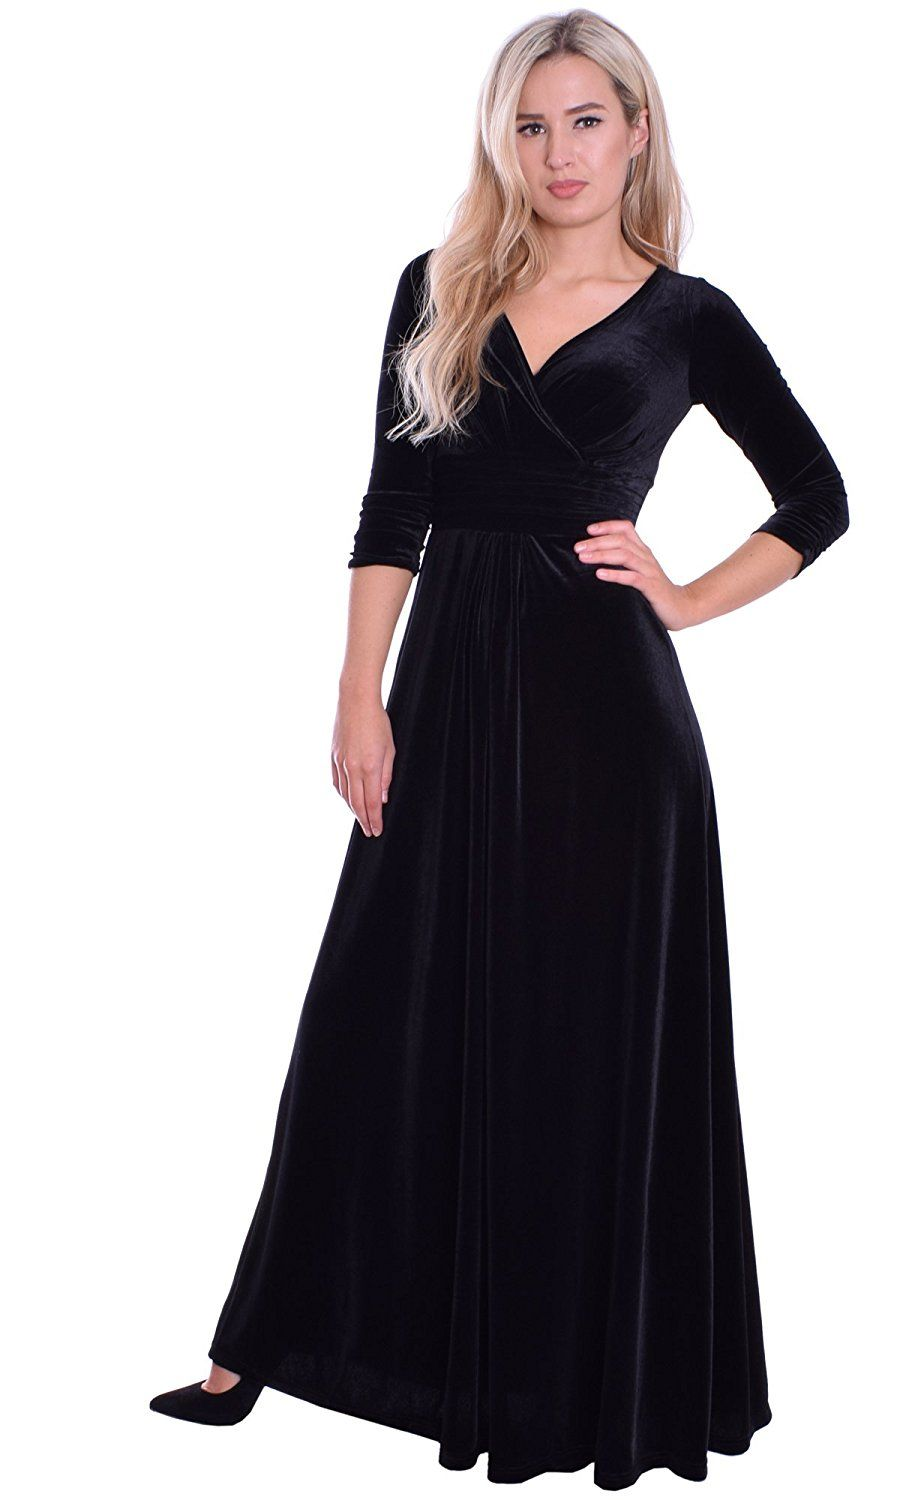 Monty q womenus empire dress black nyc pinterest